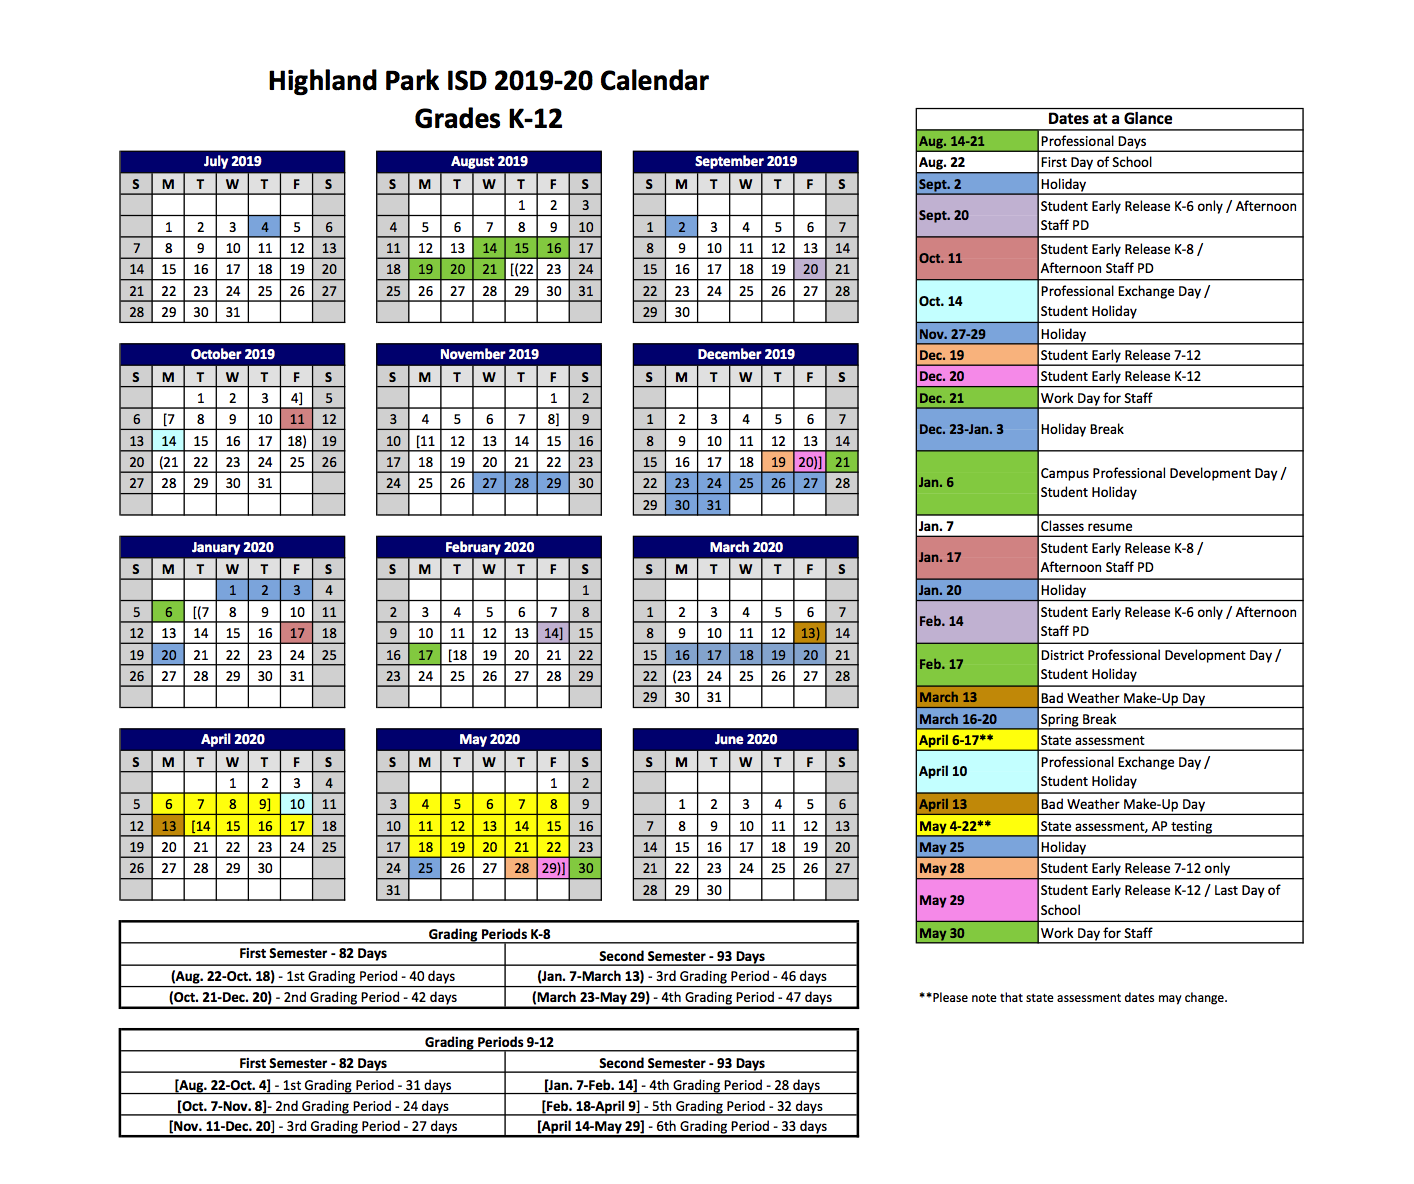 Calendario Estate 2020.2019 2020 Hpisd Calendar Calendars Highland Park